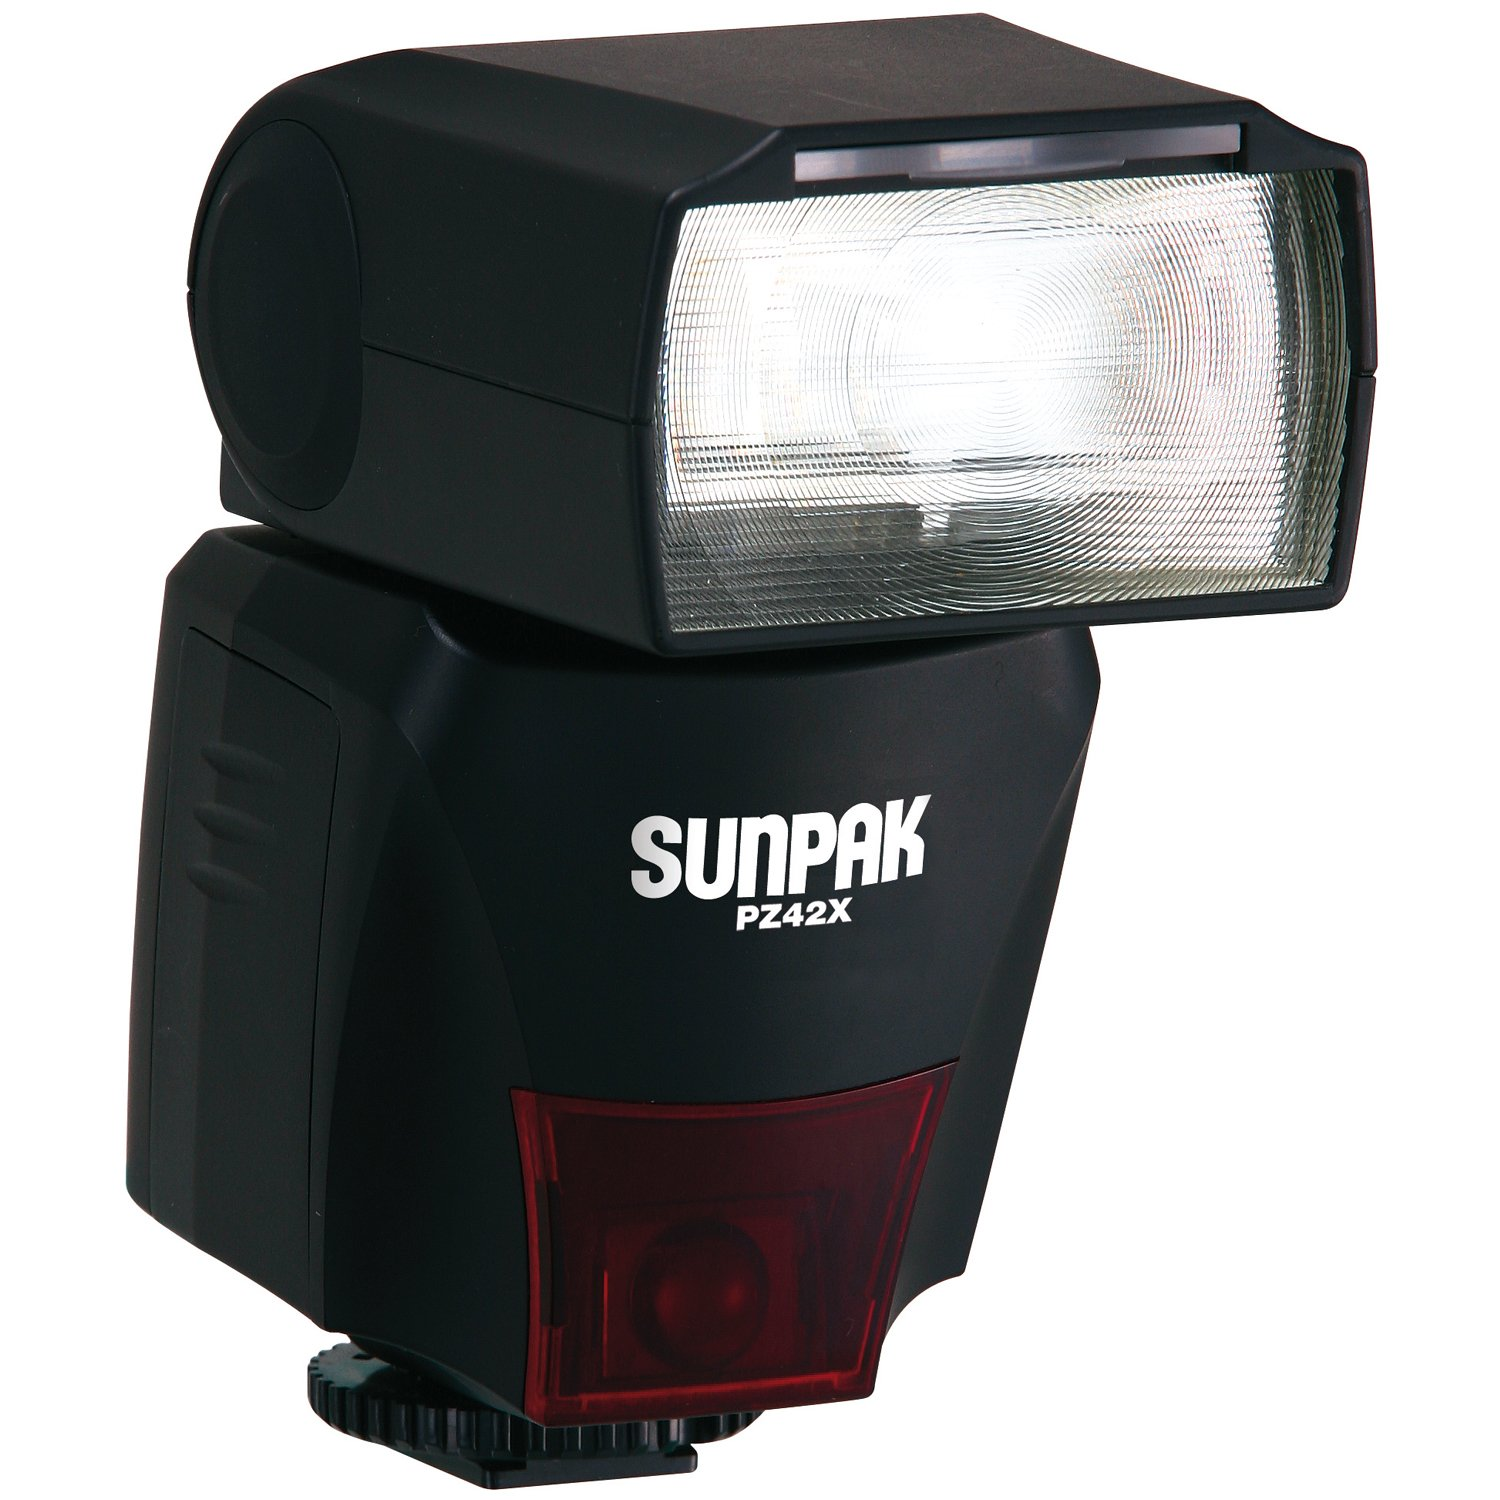 Flash appareil photo SUNPAK CANON PZ42X NOIR